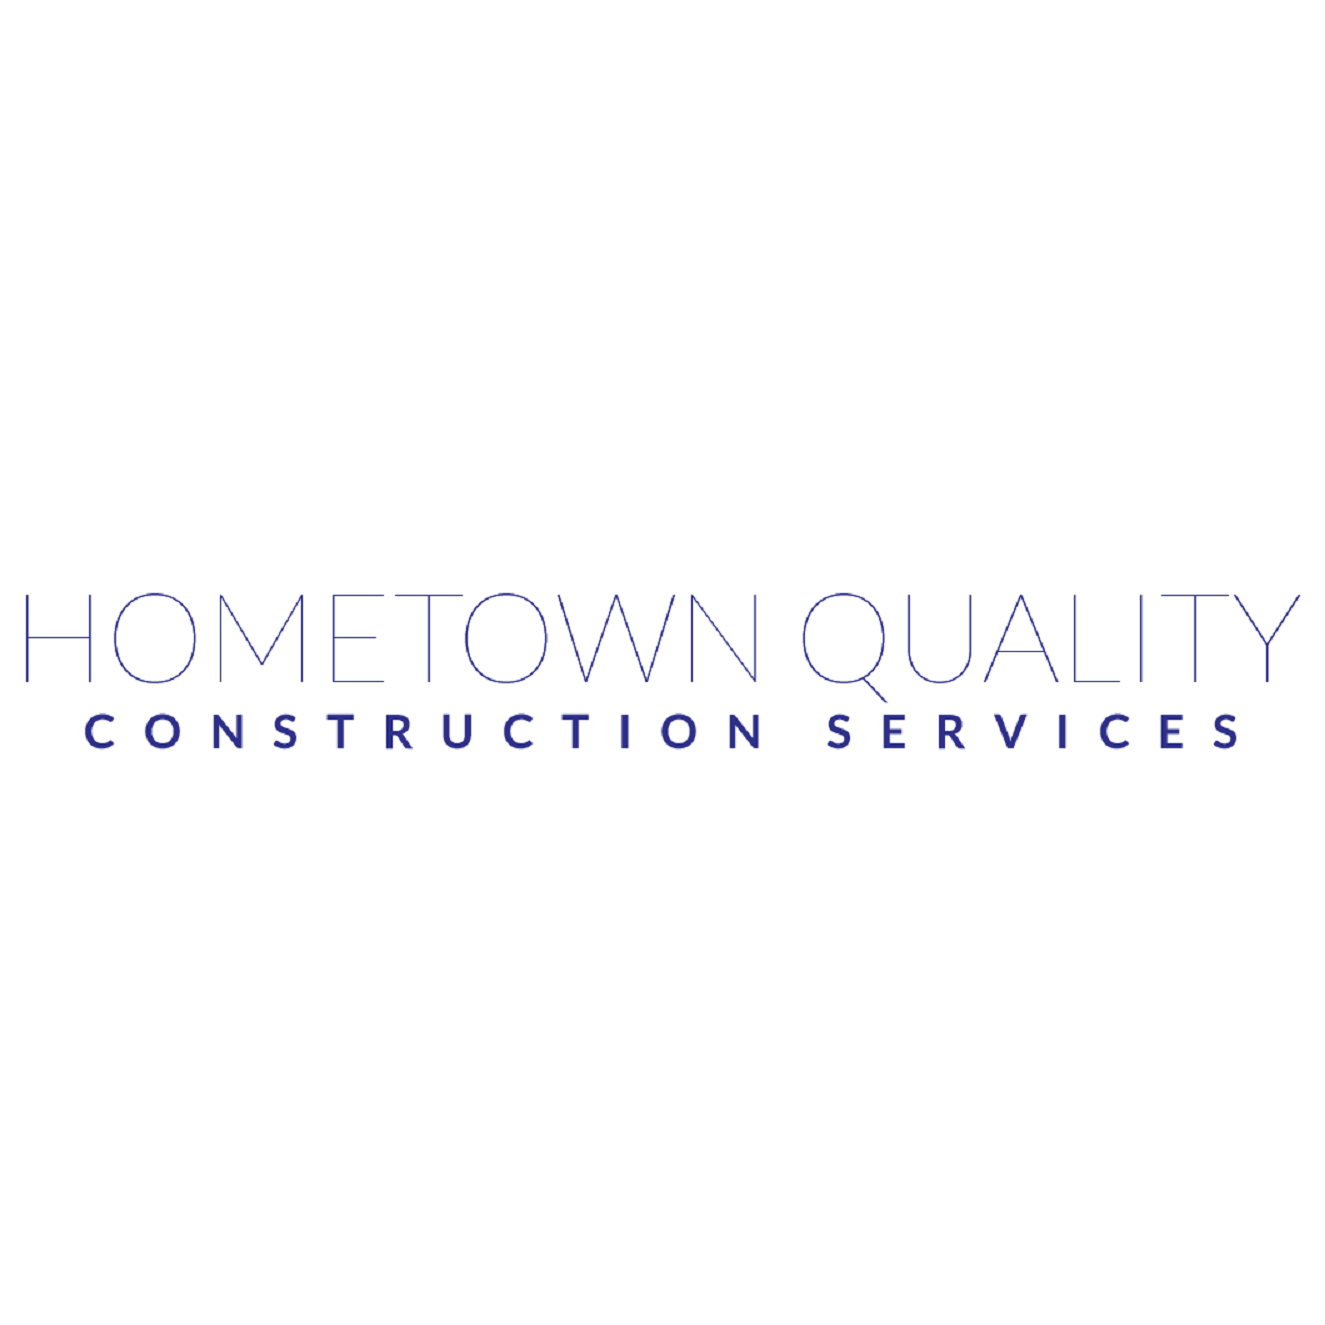 Hometown Quality Construction Services